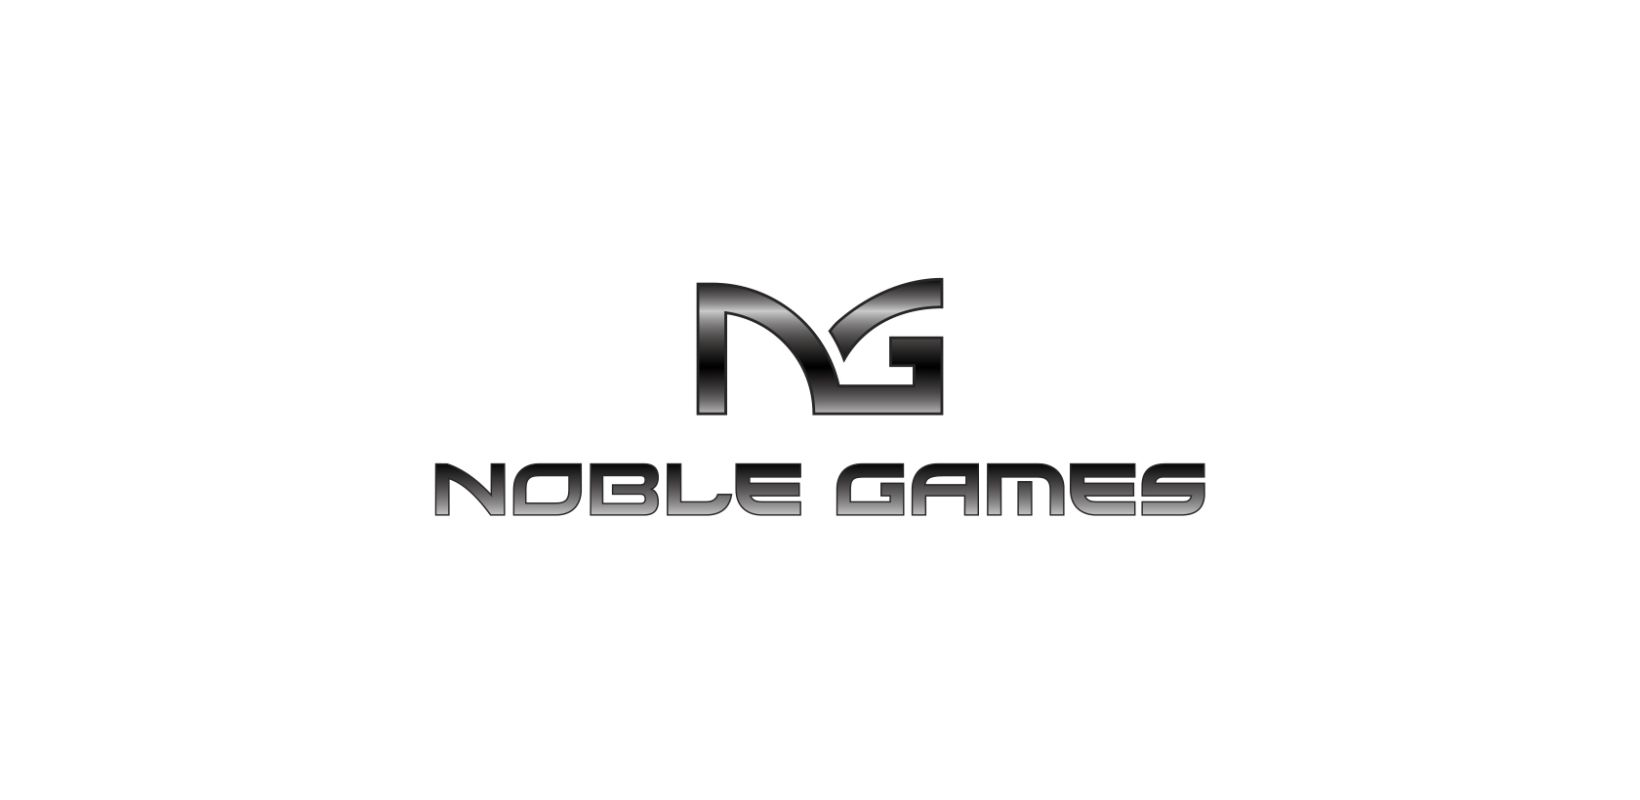 Nobel-Games-logo-brand-identity-design by think creative & print